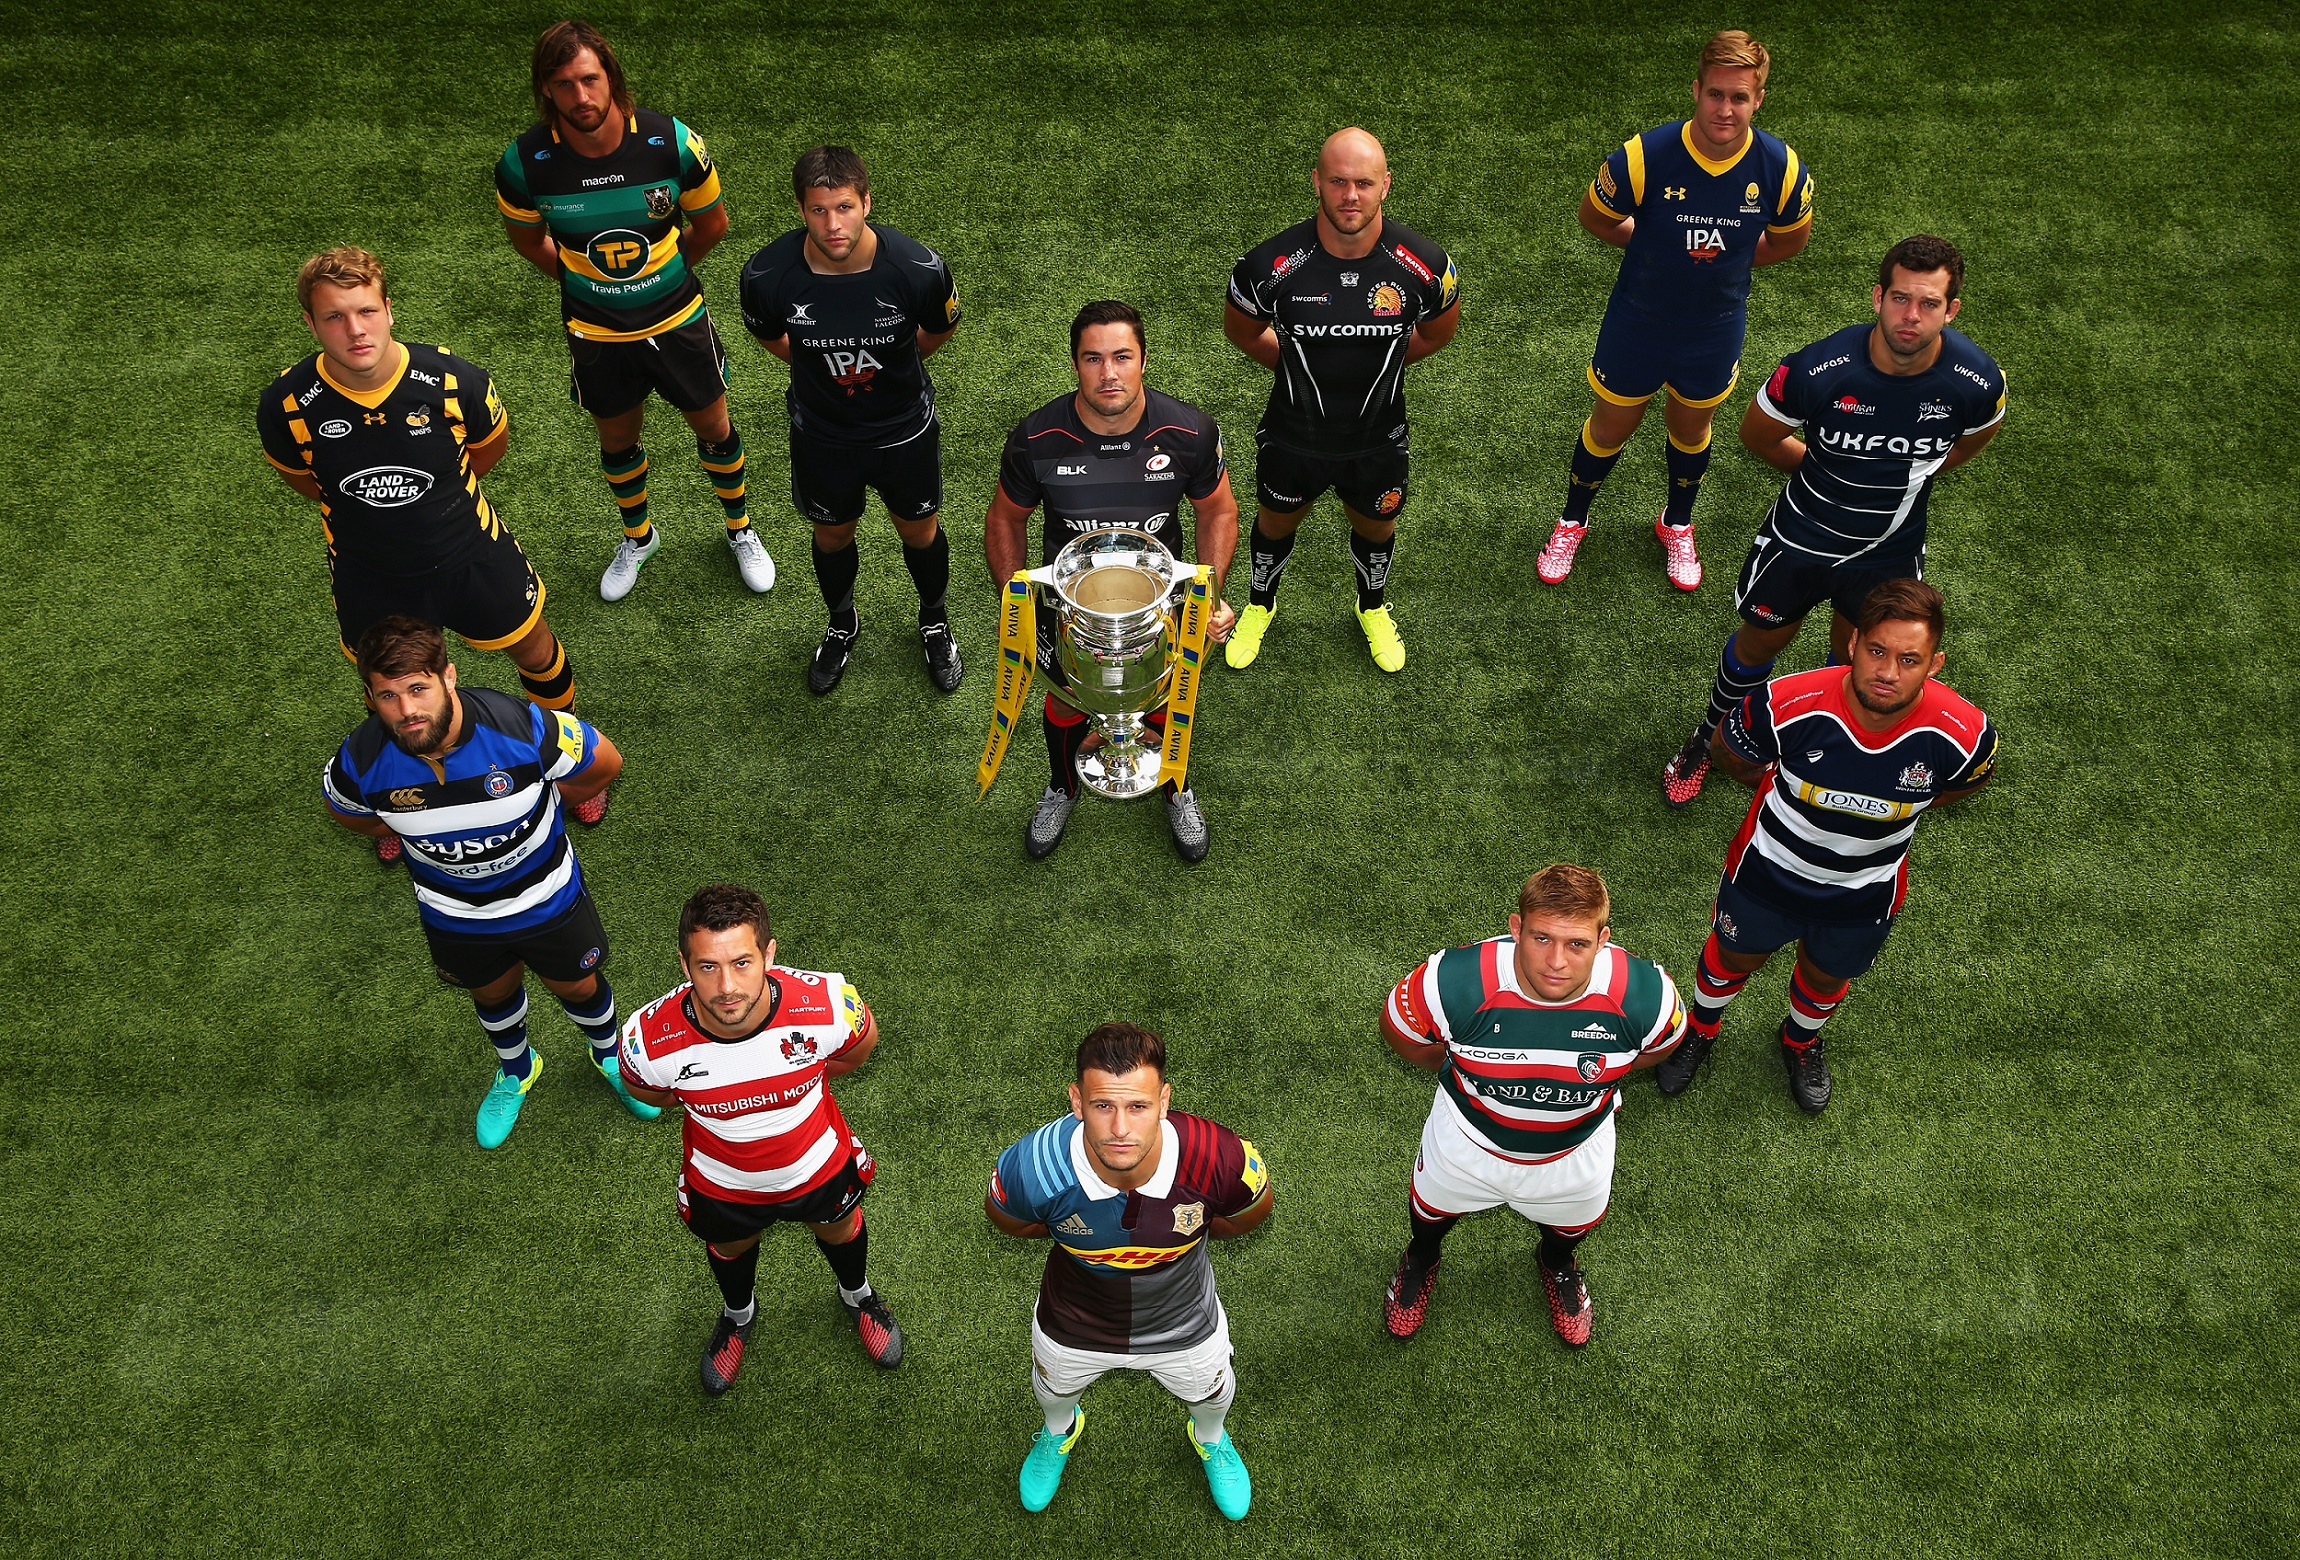 LONDON, ENGLAND - AUGUST 25: Brad Barritt, Captain of Saracens, holds the Aviva Premiership Trophy, as the twelve Captains form a heart shape at the Aviva Premiership Rugby Season Launch at Twickenham Stadium on August 25, 2016 in London. The heart shape symbolises the Aviva Community Fund initiative which launches on 13 September 2016. The initiative lends a helping hand to local communities, including grassroots sports clubs, by offering funding of up to £25,000. during the Aviva Premiership Rugby 2016-2017 Season Launch at Twickenham Stadium on August 25, 2016 in London, England. (Photo by Steve Bardens/Getty Images for Aviva)